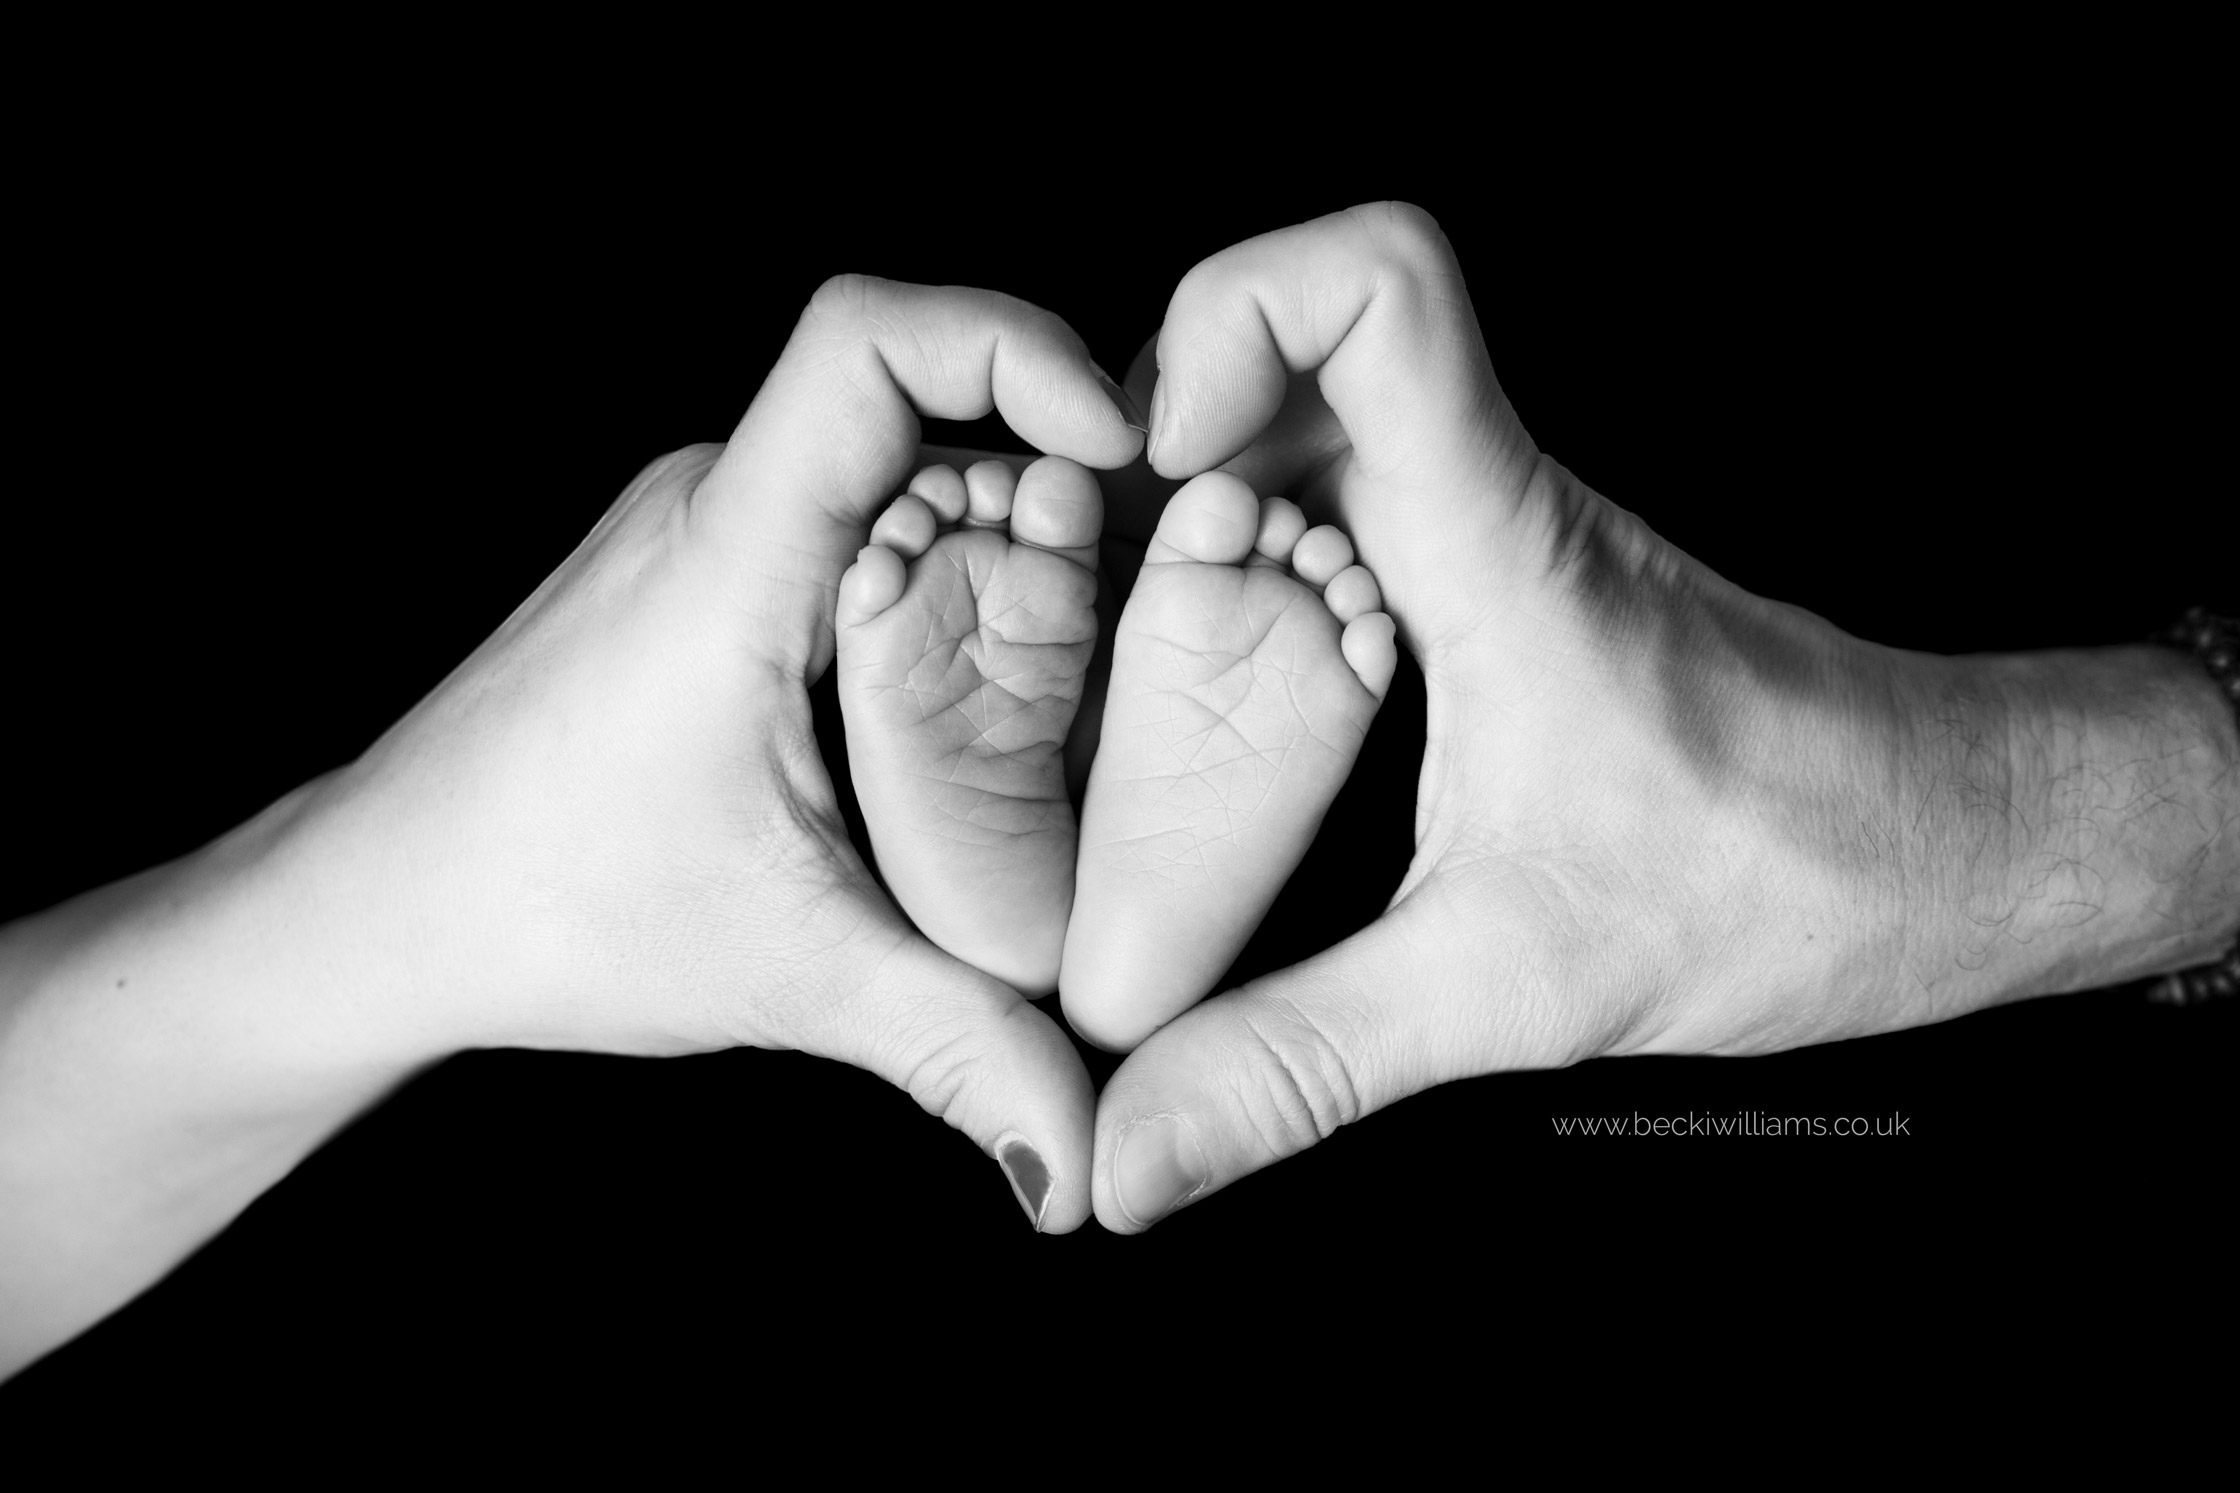 newborn feet inside parents hands making a heart shape in black and white